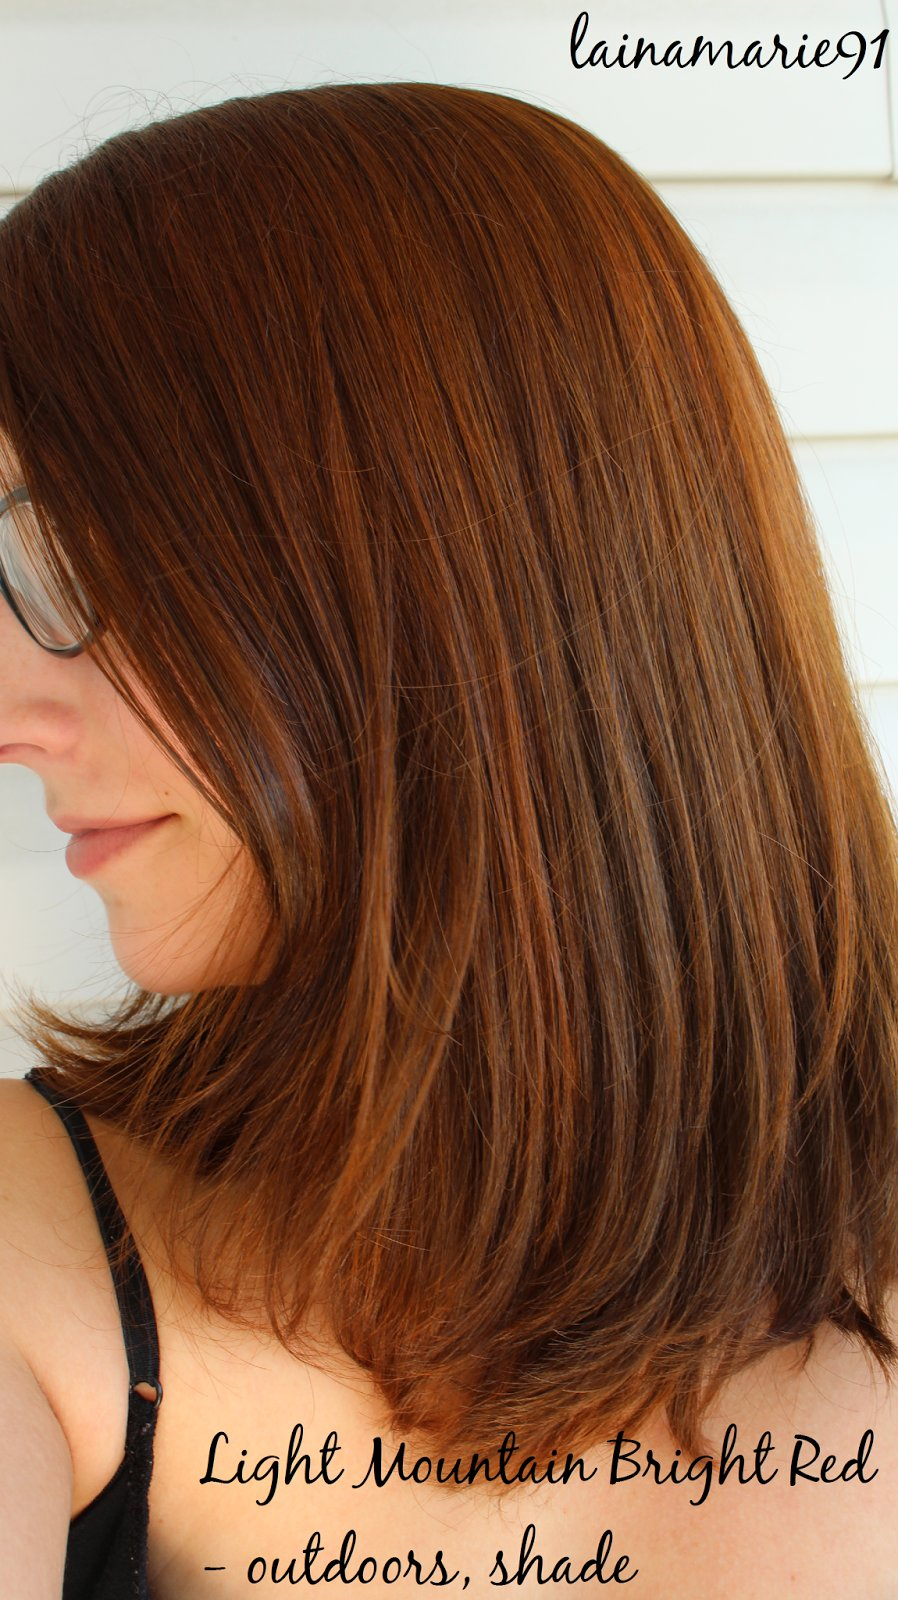 New Lainamarie91 Light Mountain Bright Red Henna Hair Dye Ideas With Pictures